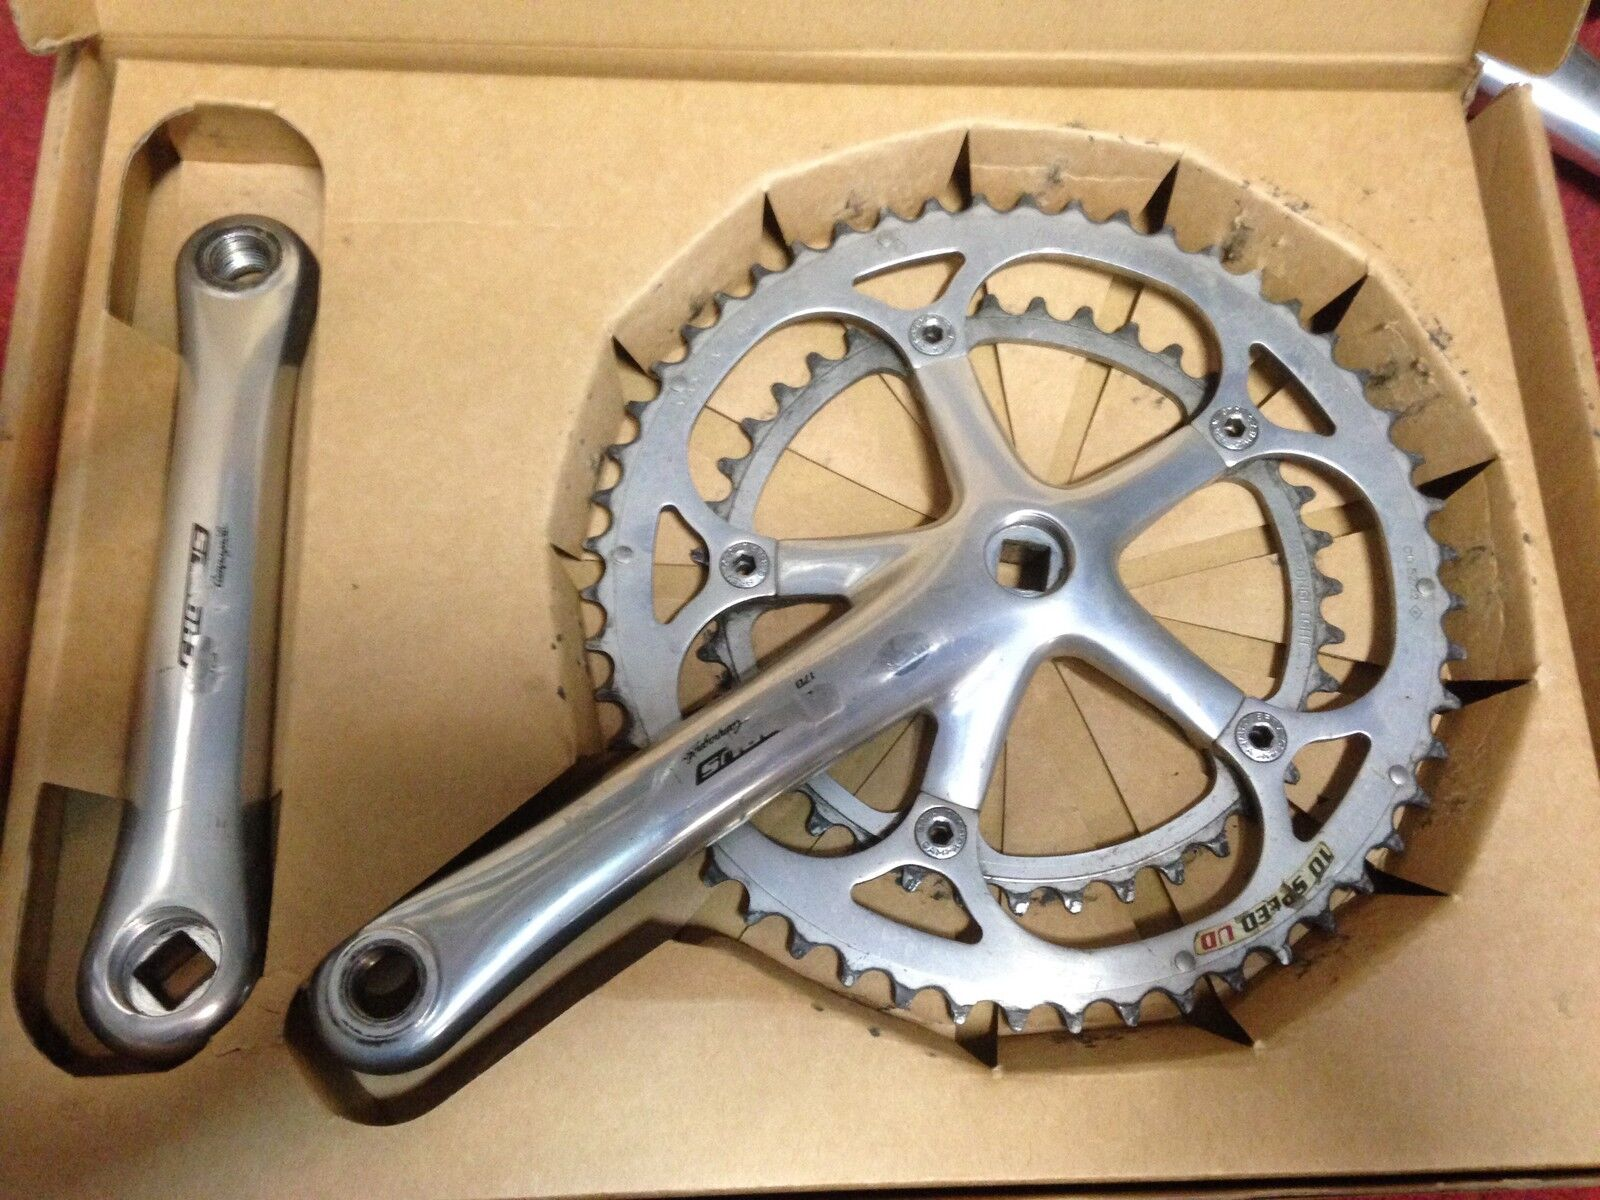 Guarnitura Campagnolo Chorus 10 bike Crankset 170 52-39 made in